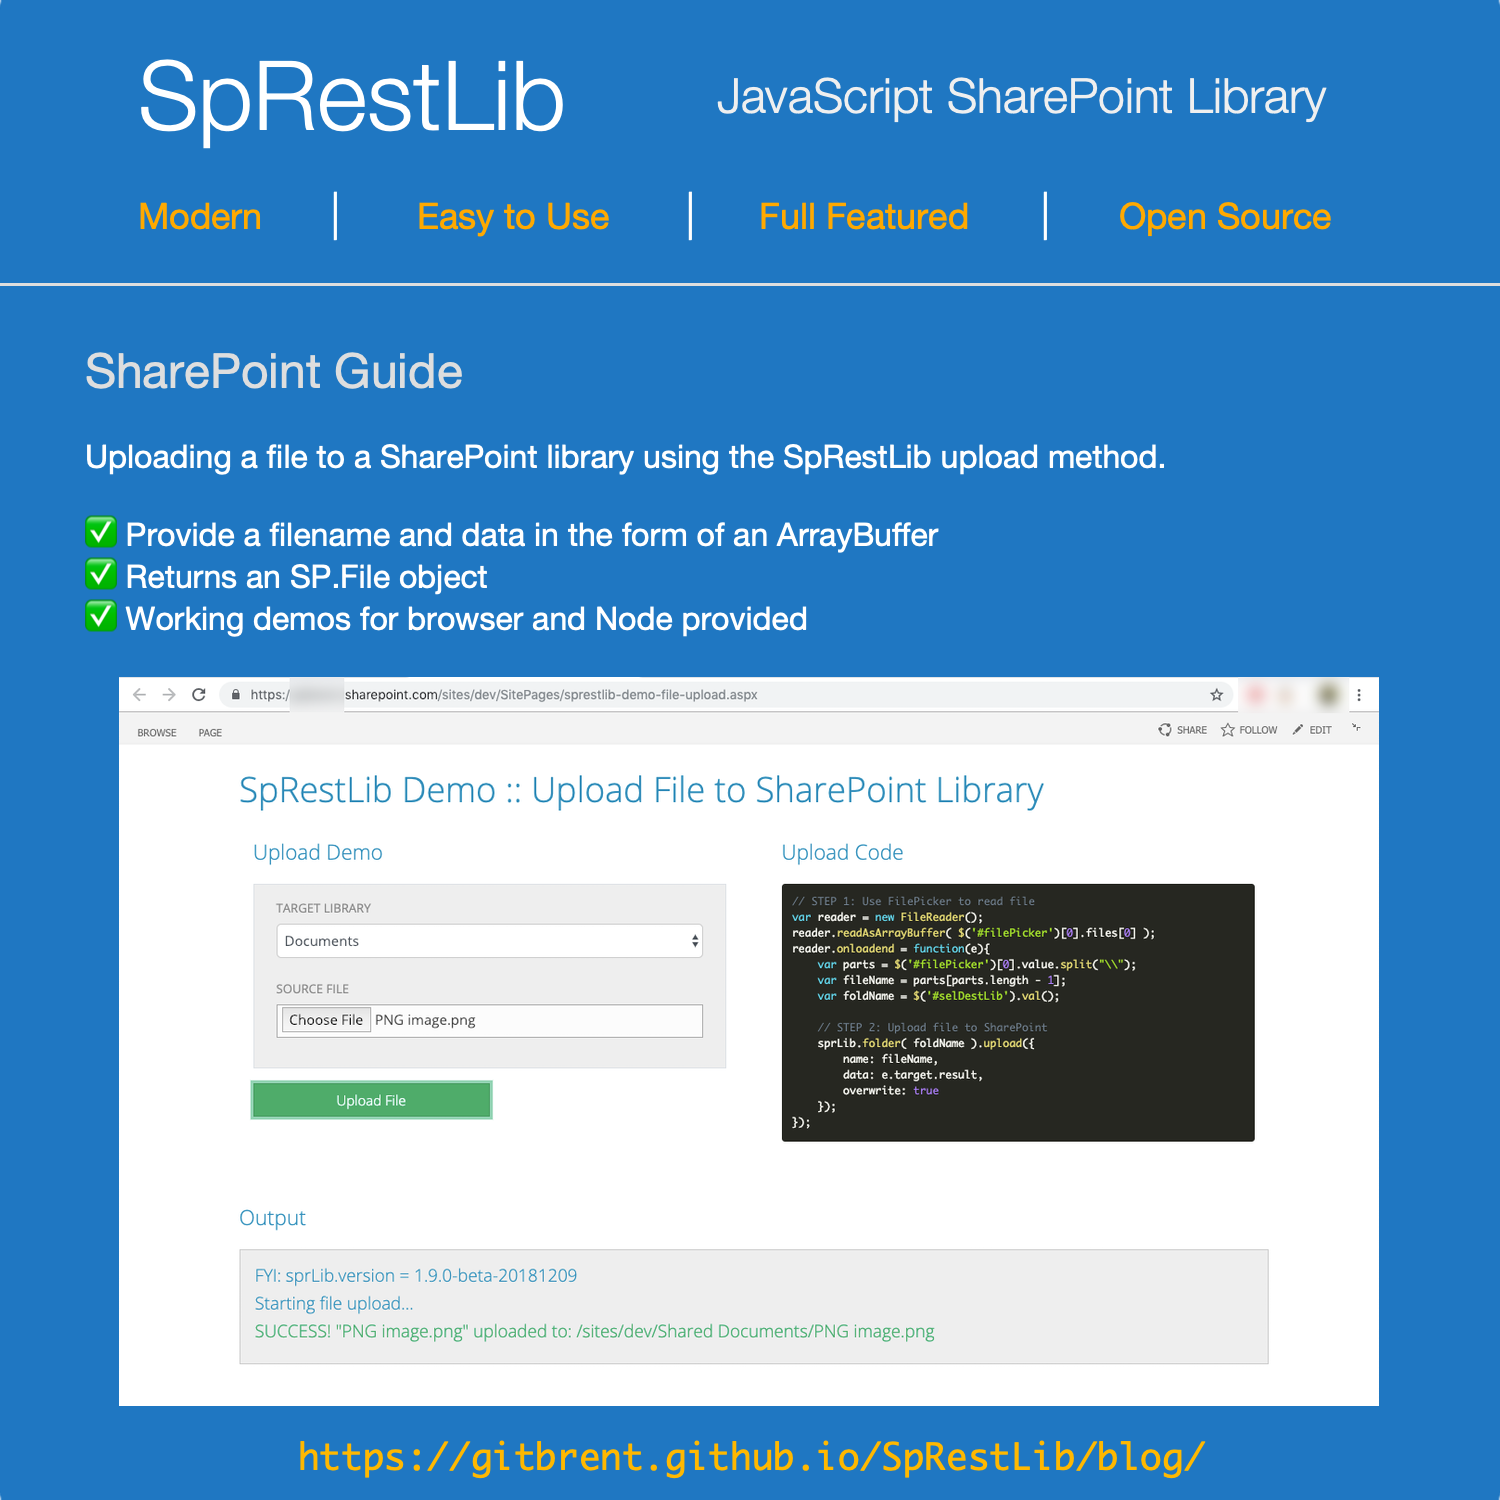 Howto upload a file into a SharePoint Library using